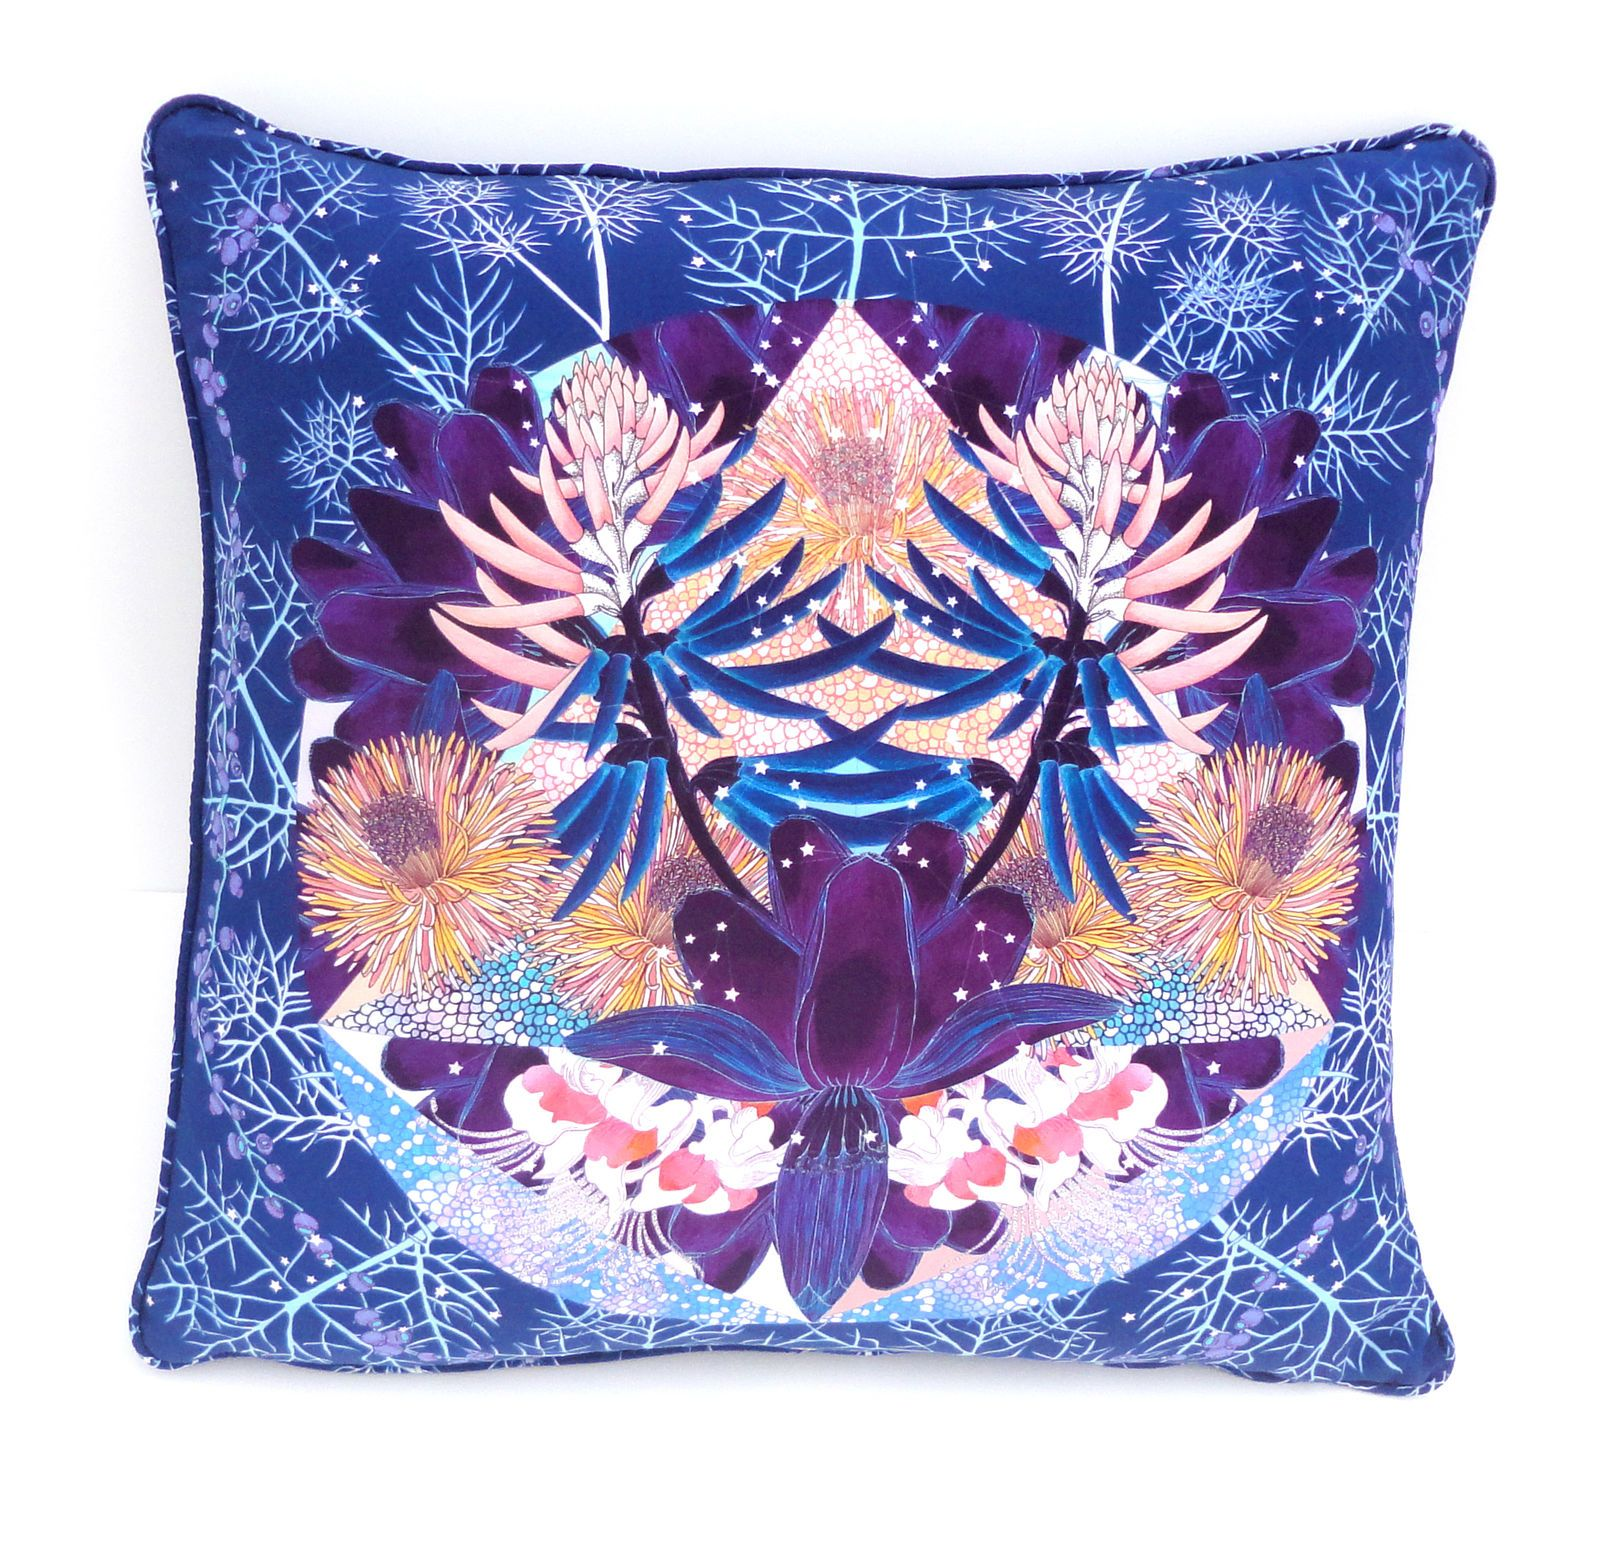 Forget me not twilight cushions cushions home pinterest